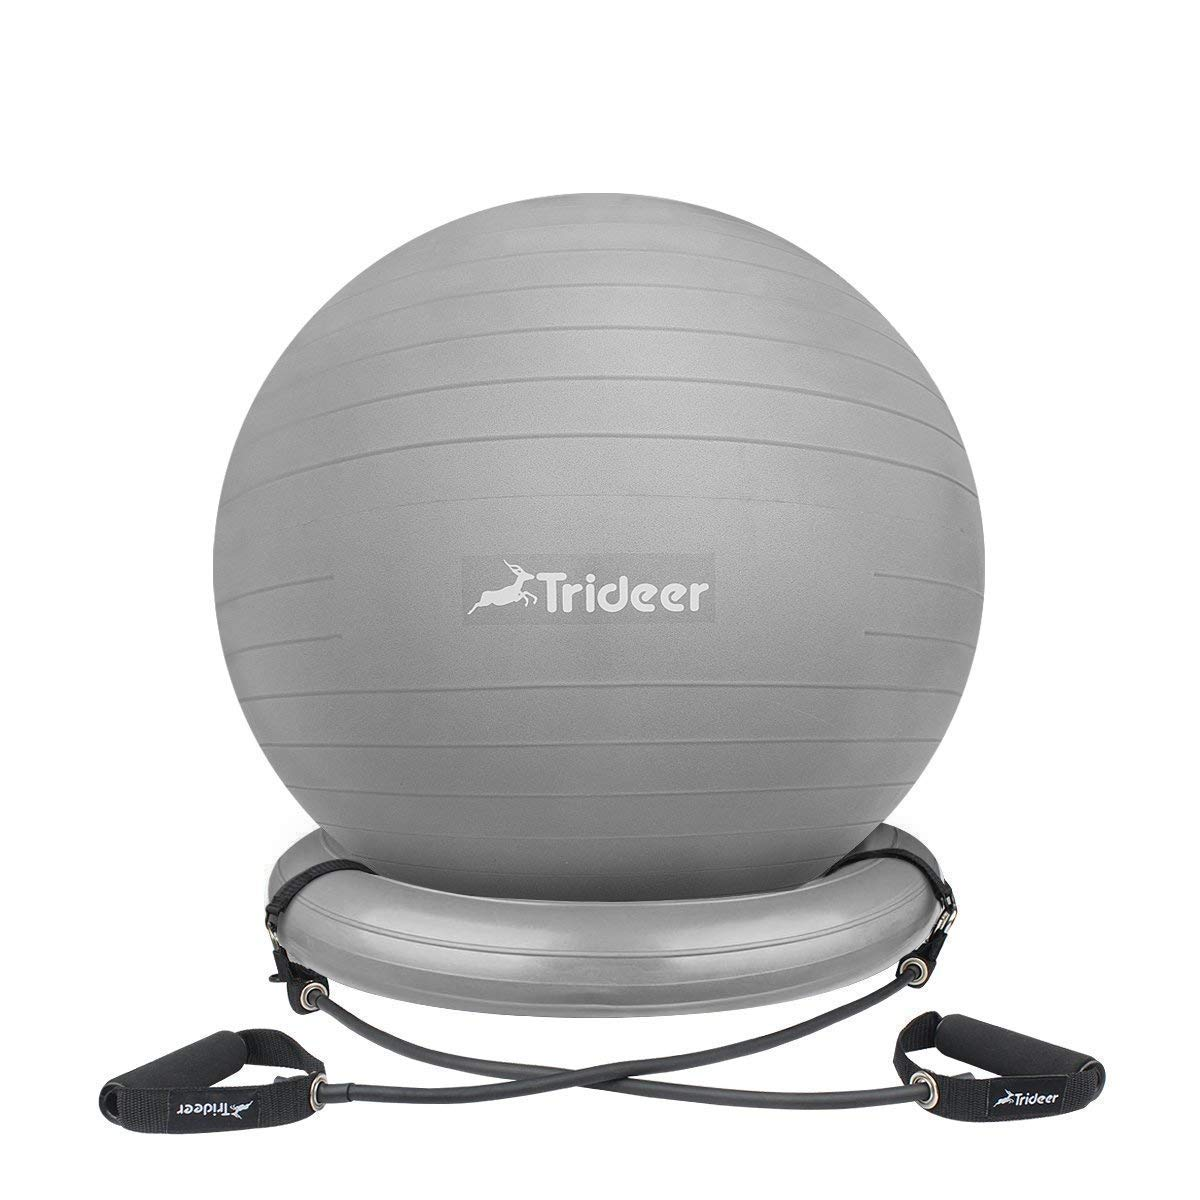 Trideer Ball Chair, Exercise Stability Yoga Ball with Base & Resistance Bands for Home and Office Desk, Flexible Ball Seat with Pump, Improves Balance, Core Strength & Posture (Silver, 65cm) by Trideer